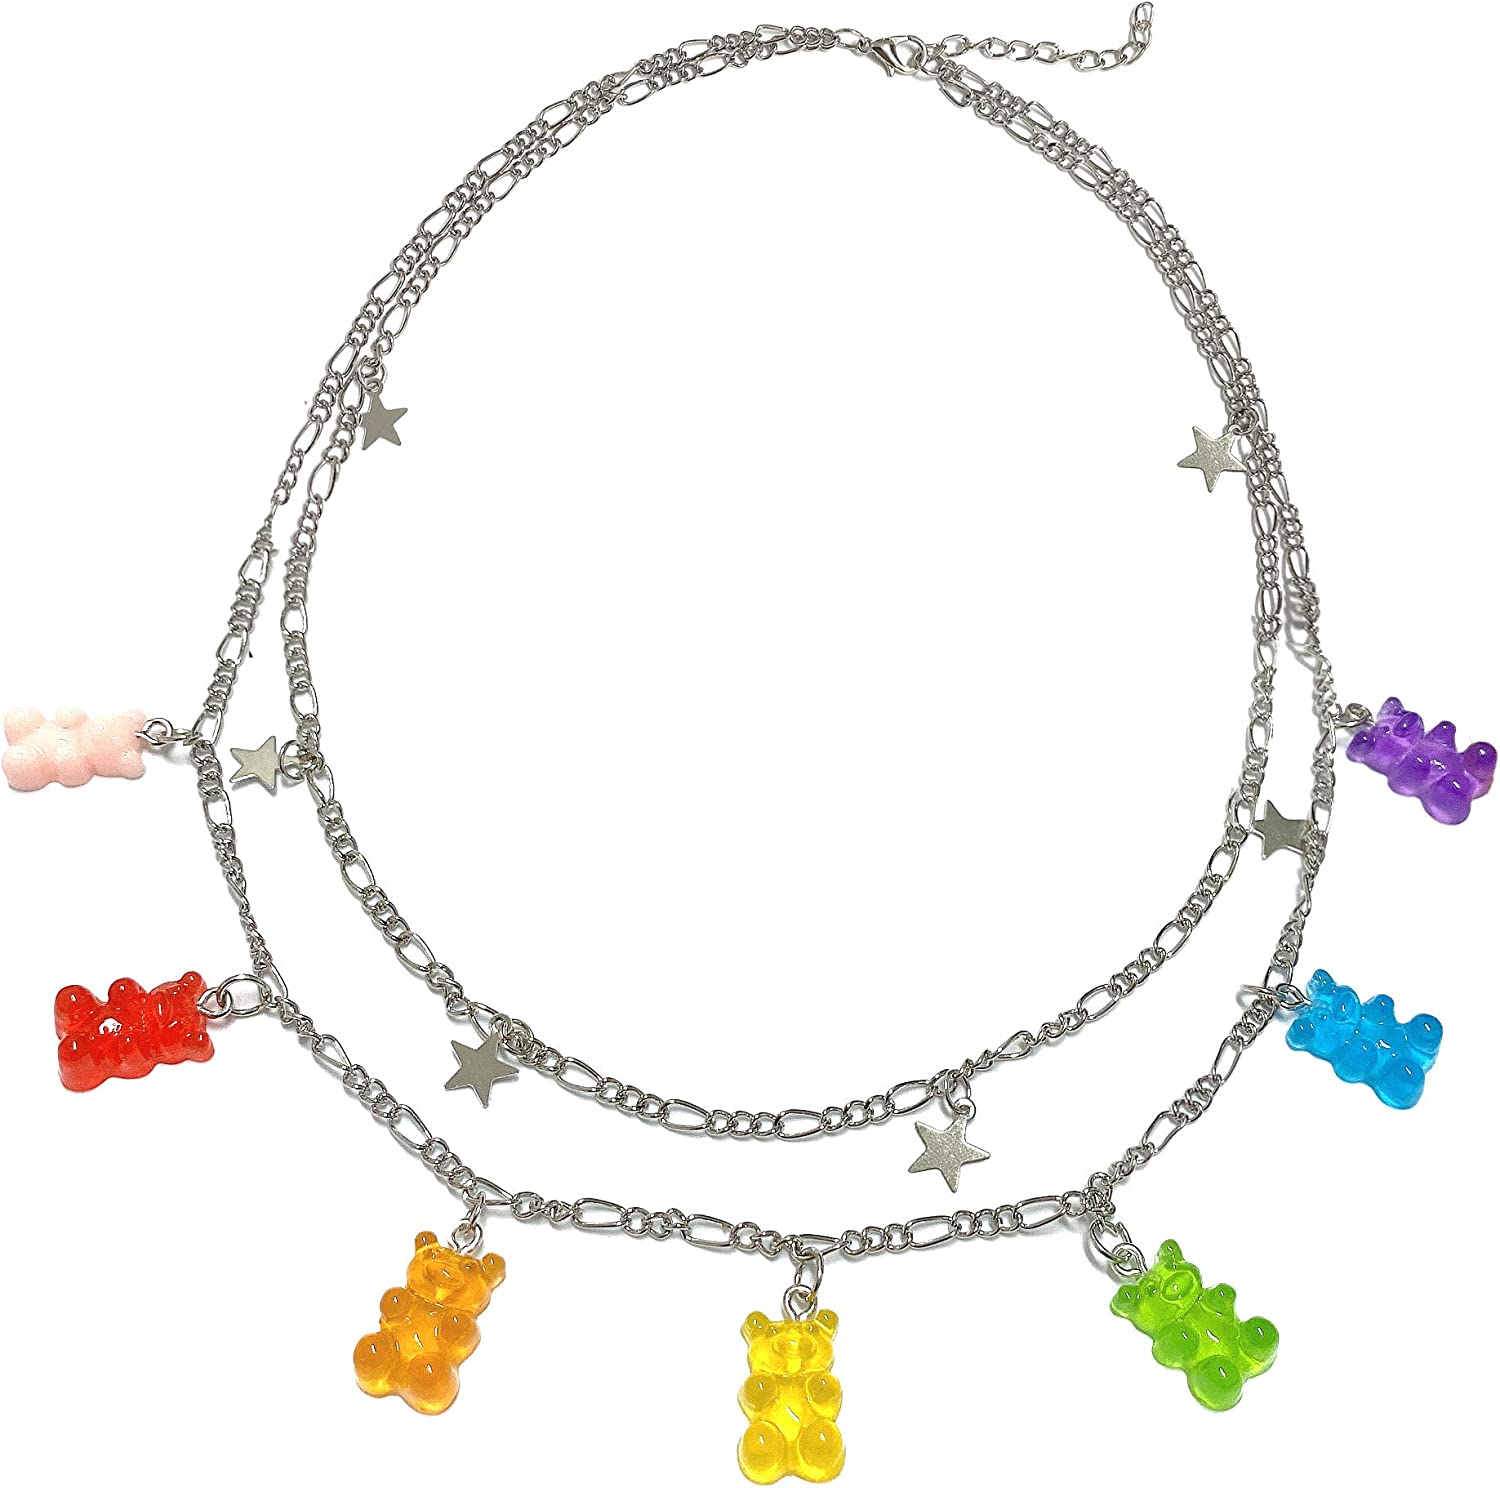 35% OFF yfstyle Layered Lock Necklace Choker Punk Max 80% OFF Chain